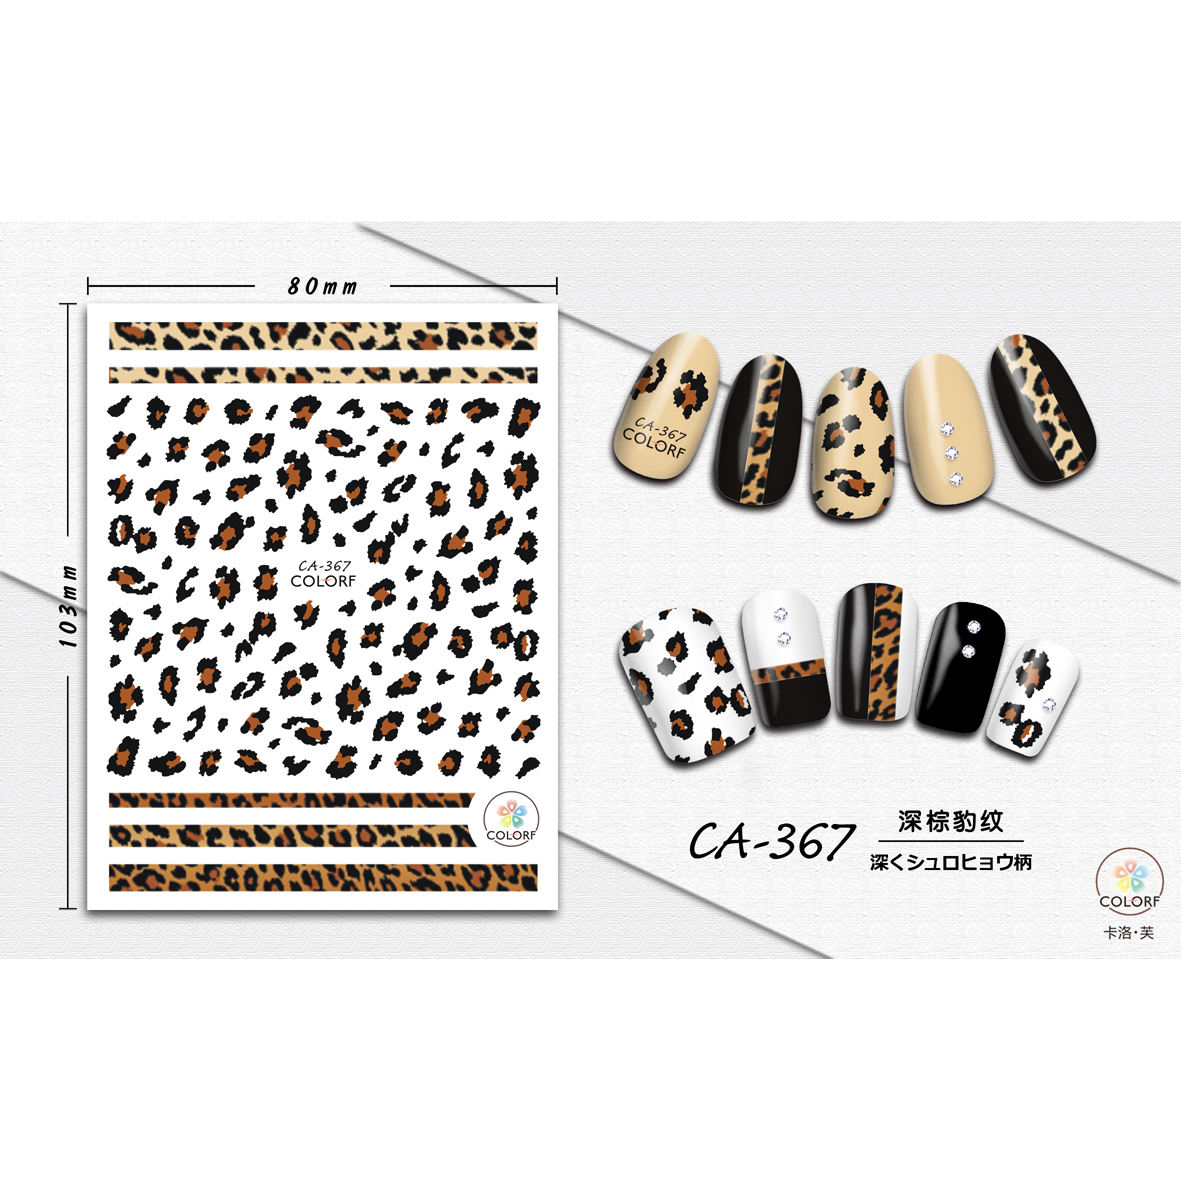 Fall Autumn Leopard Flower 2d Logo Nail Art Sticker CA Series 2020 Accessories Beautiful Hot Sell DIY New Design